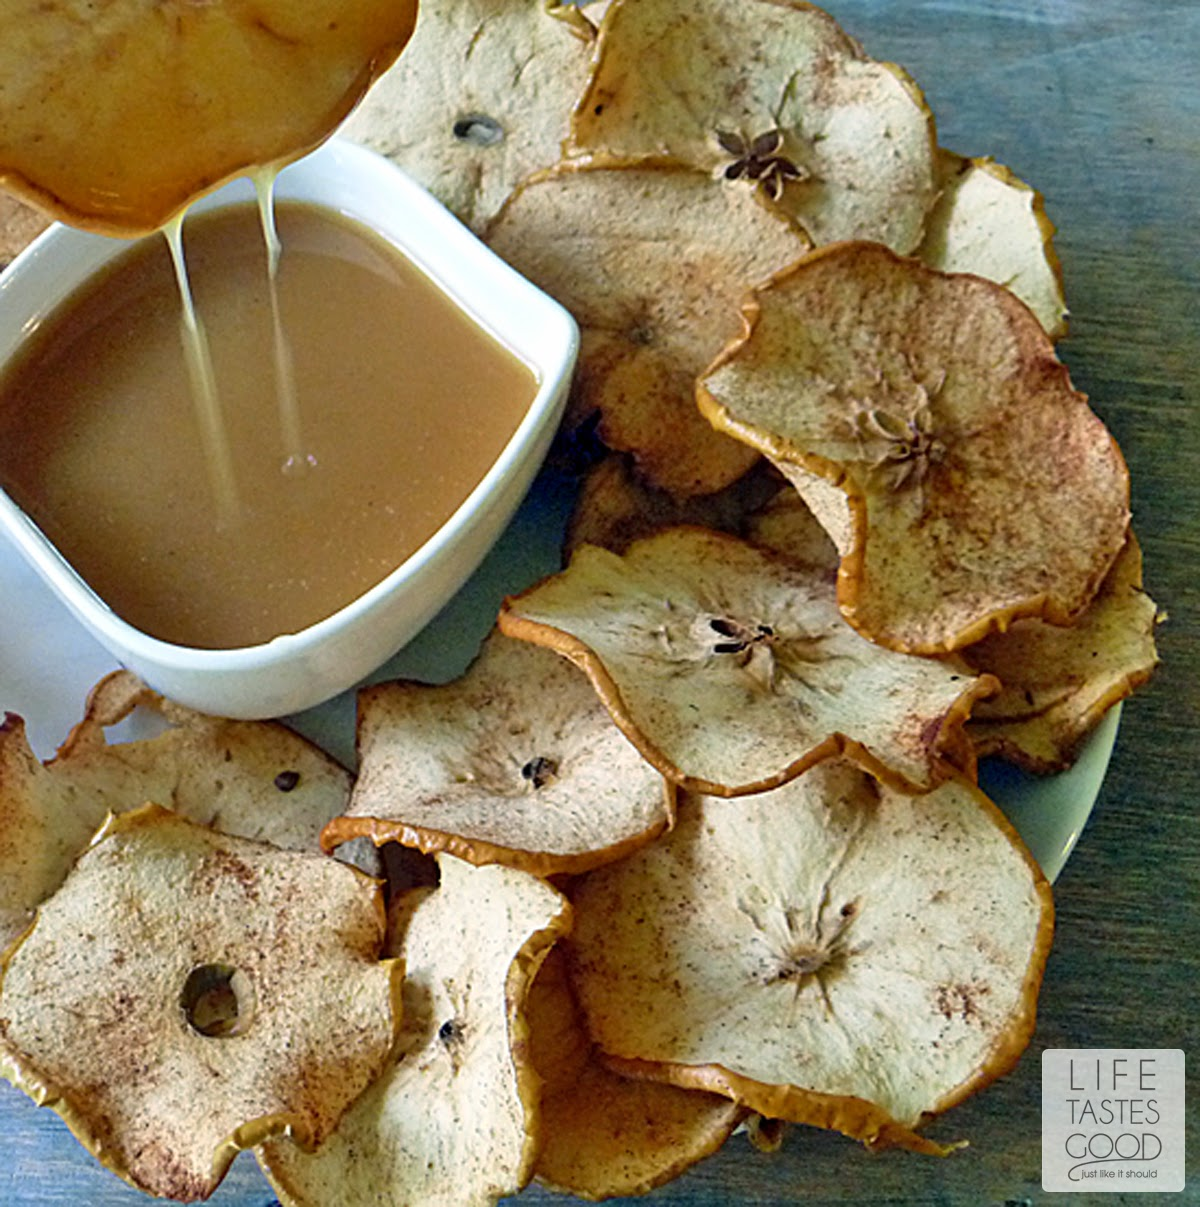 Apple Chips with Salted Caramel | by Life Tastes Good